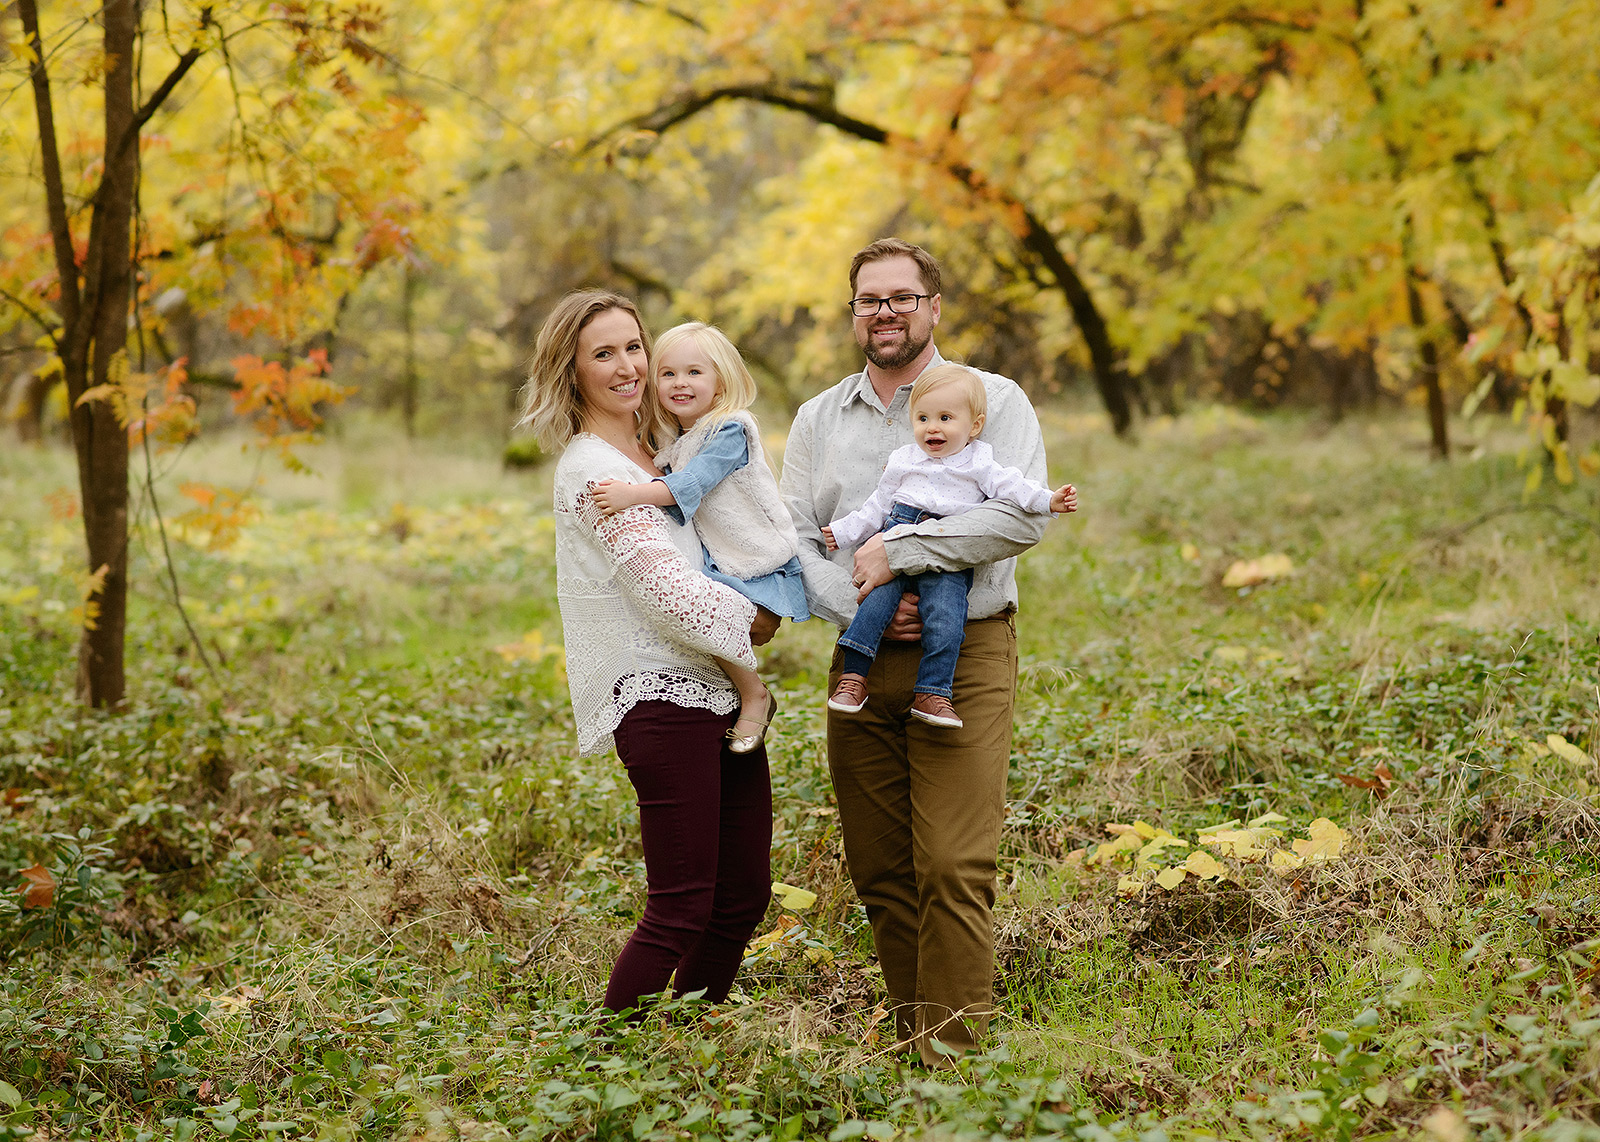 Family Portrait with Son and Daughter in Chico Outdoors with Tree Background